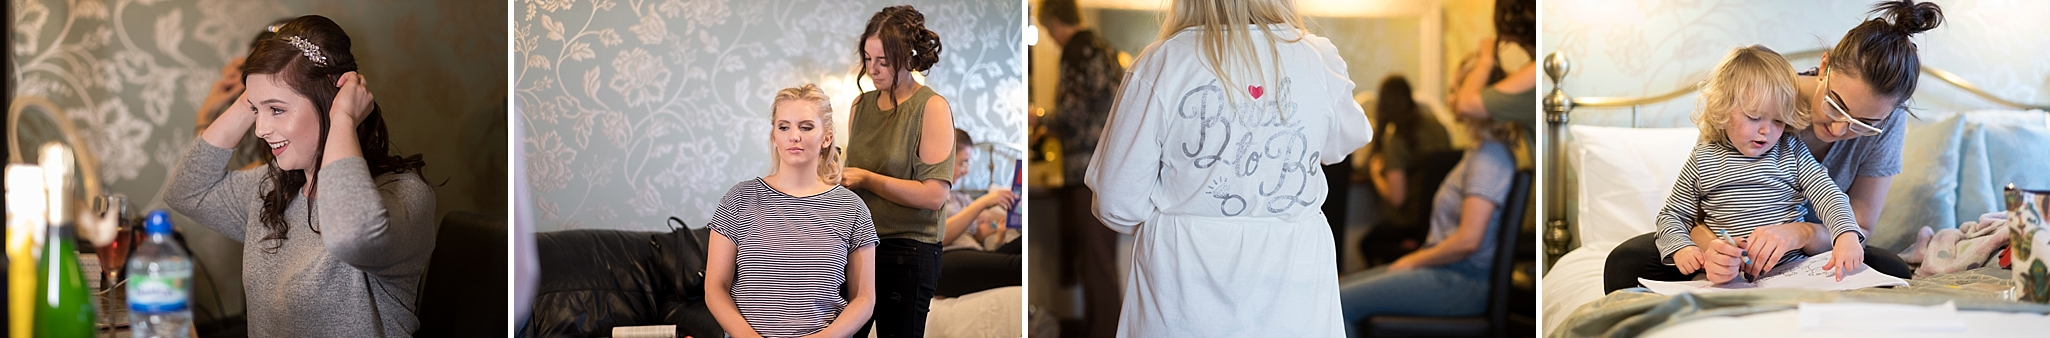 heaton house farm wedding photographer stoke 4.jpg